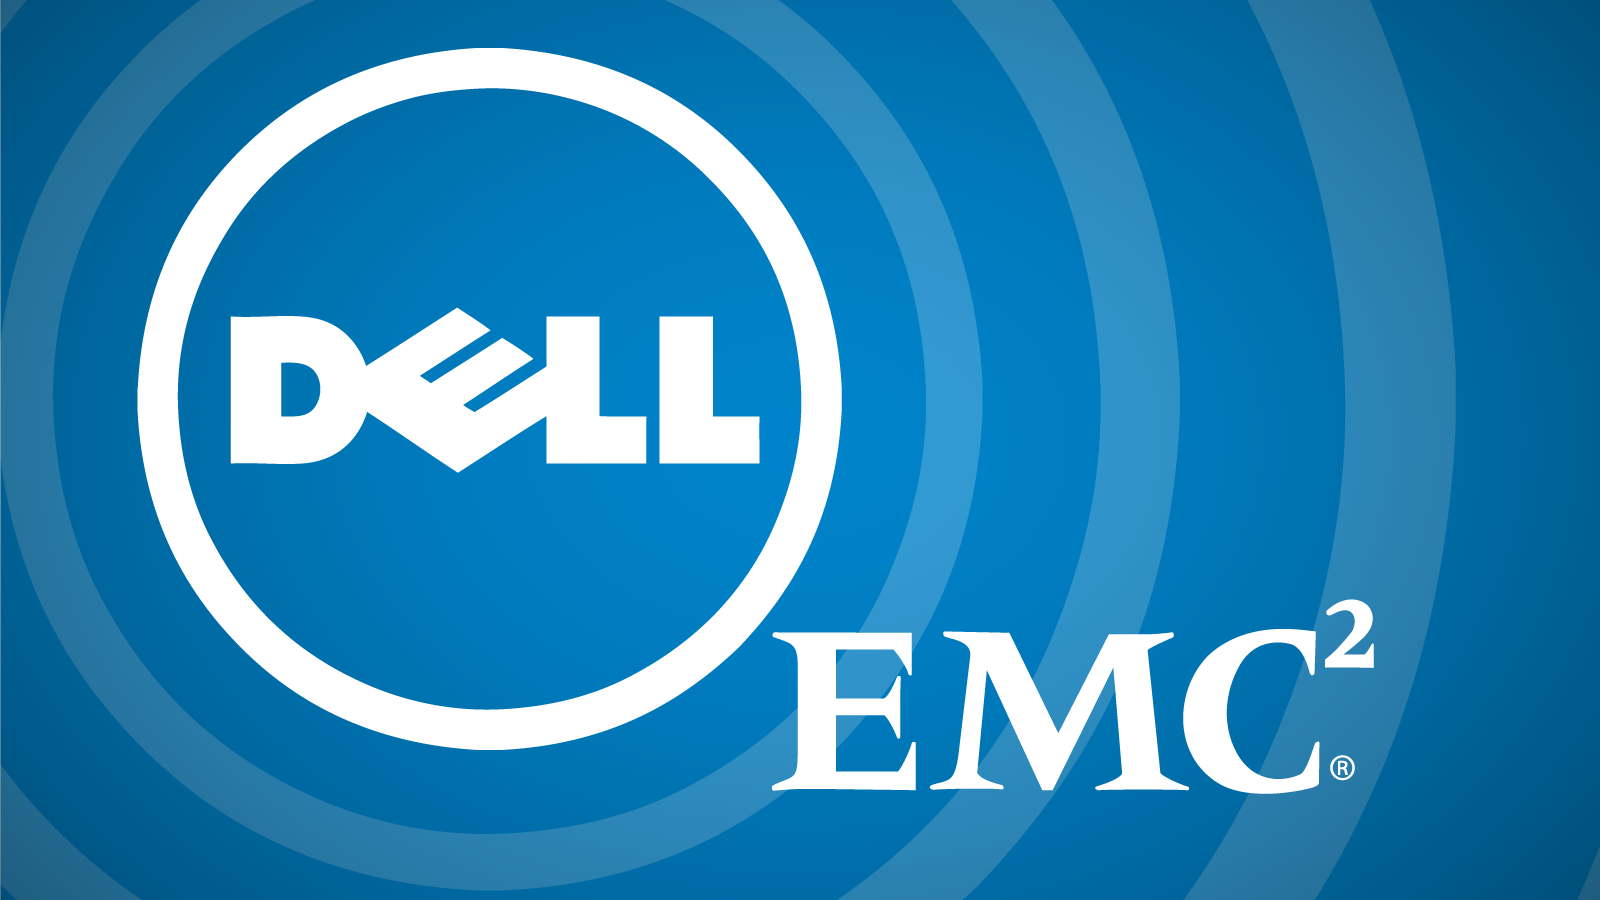 67 billion dell emc deal closes today techcrunch biocorpaavc Images